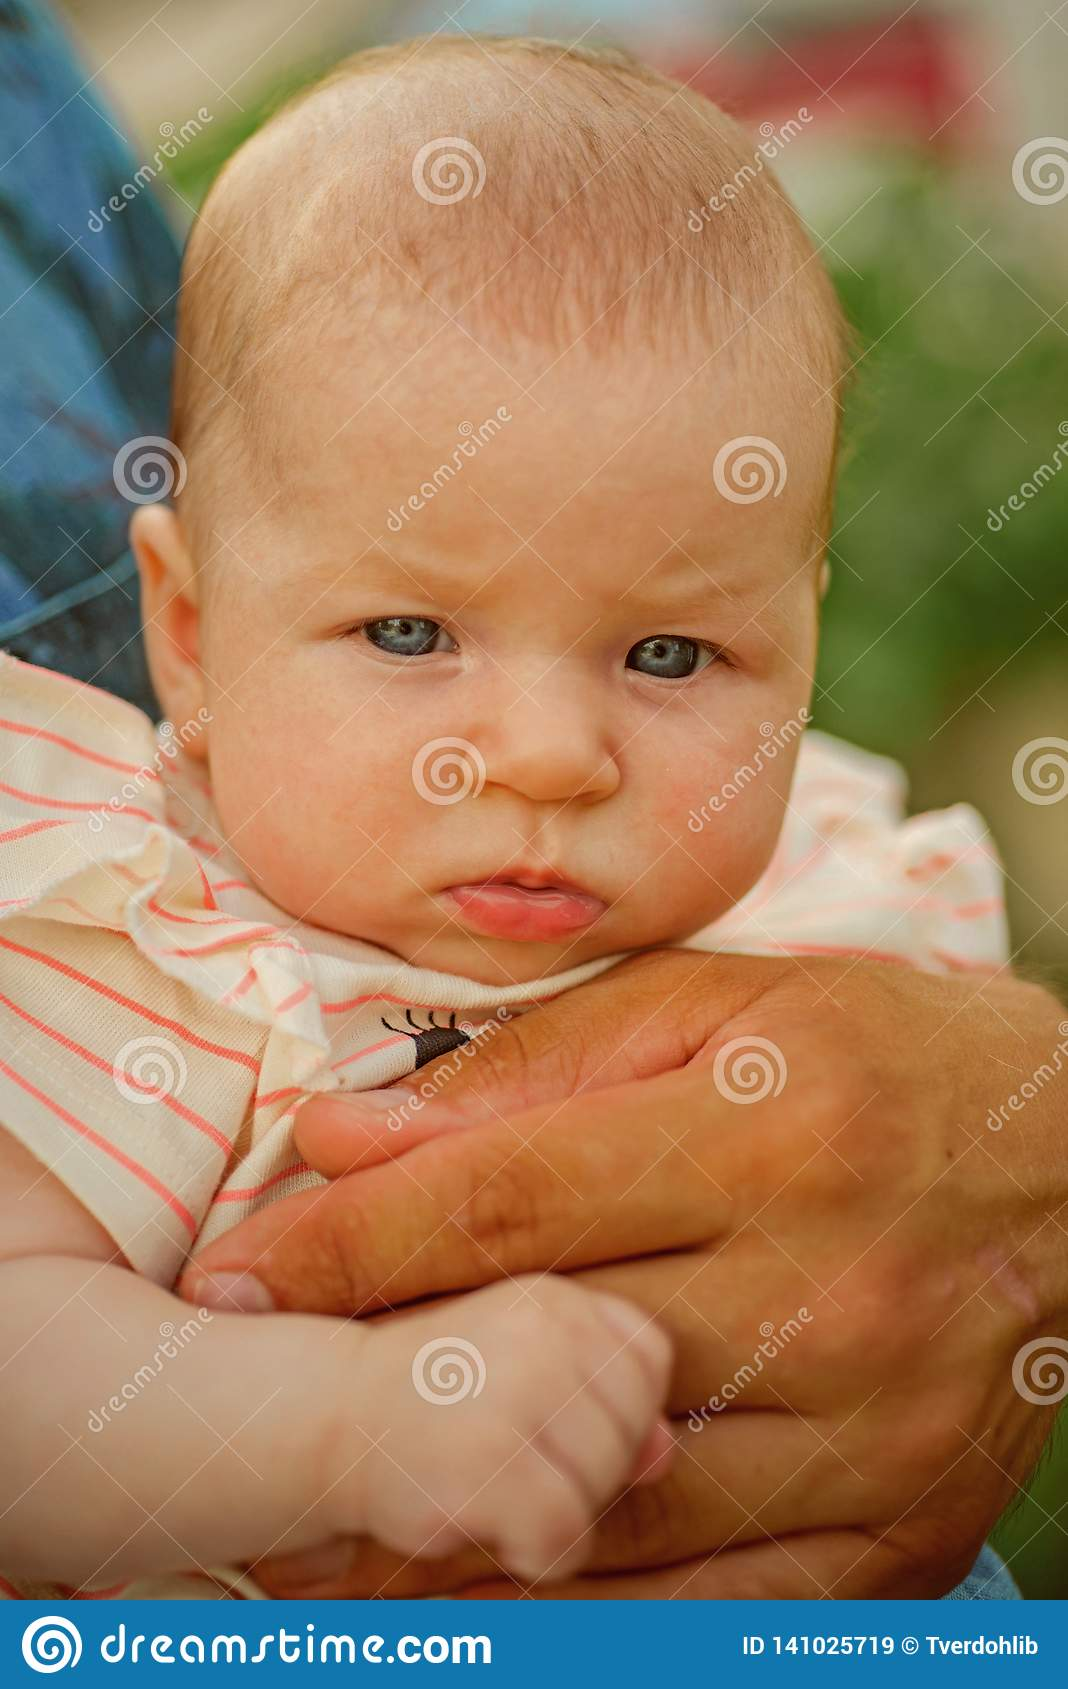 Newborn Infant Normally Suffer From New Born New Life Newborn Boy Or Girl Healthy Life To